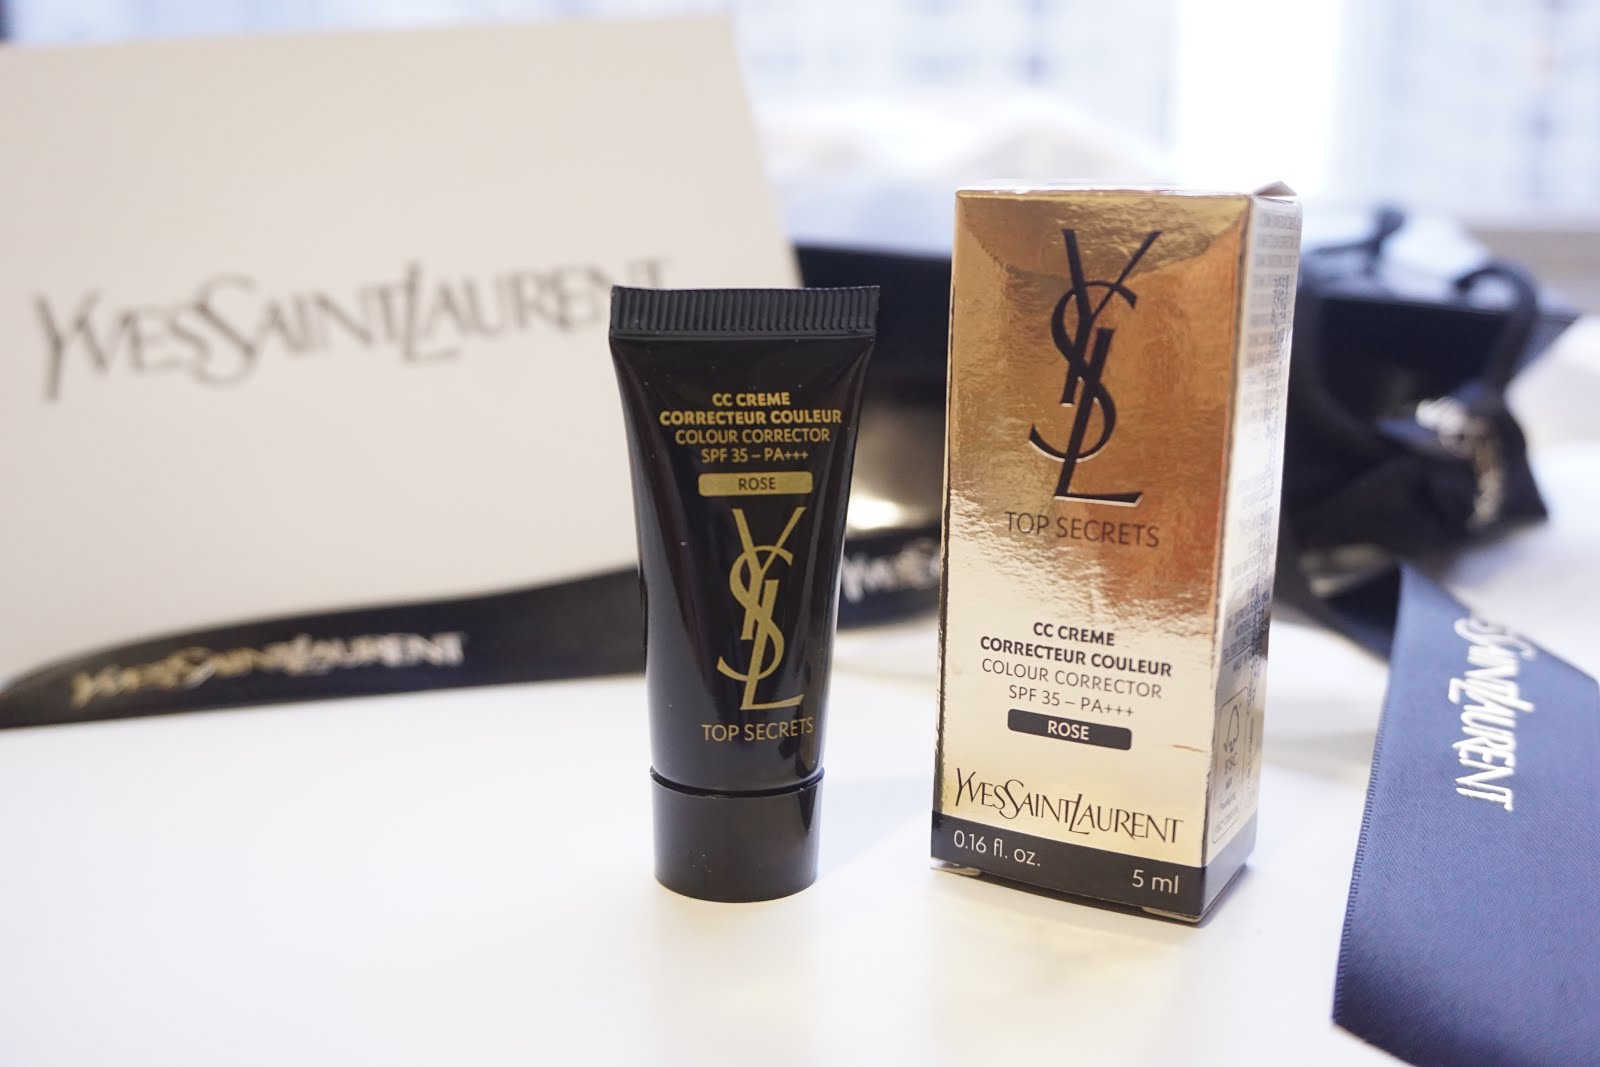 Product Review Yves Saint Laurent Ysl Beauty